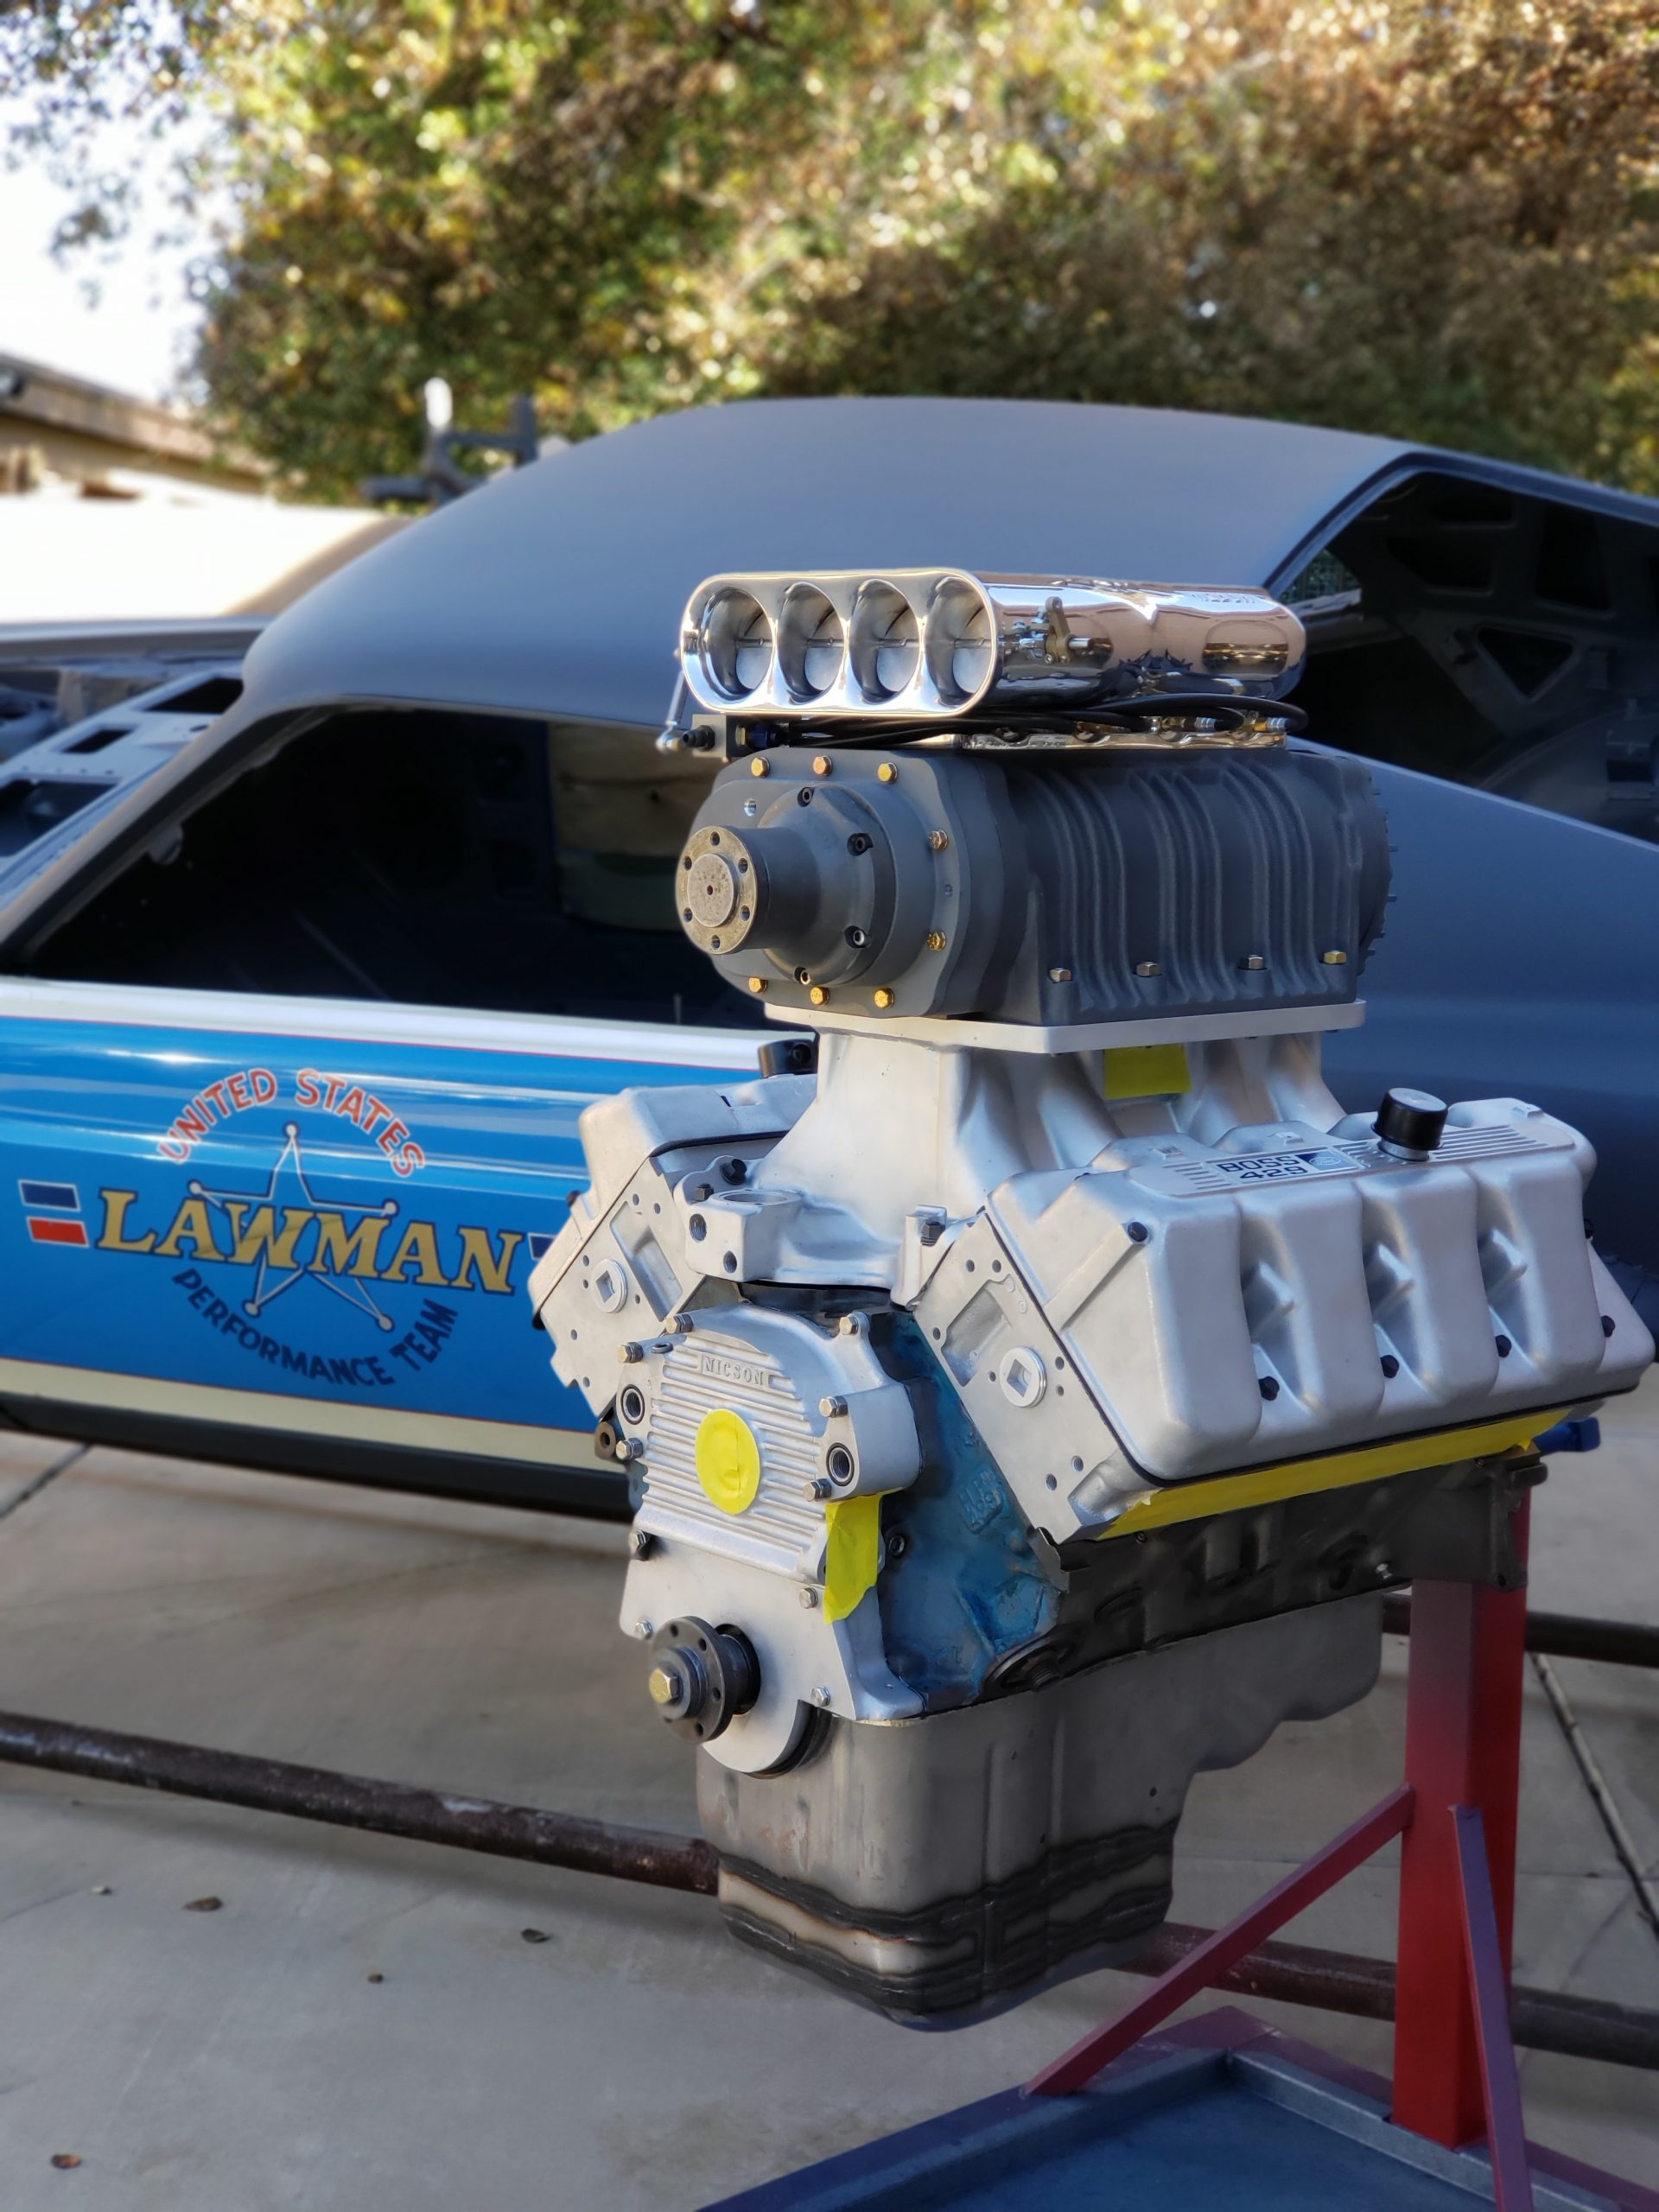 Lawman Boss 429 Ford Mustang restoration engine bare on stand